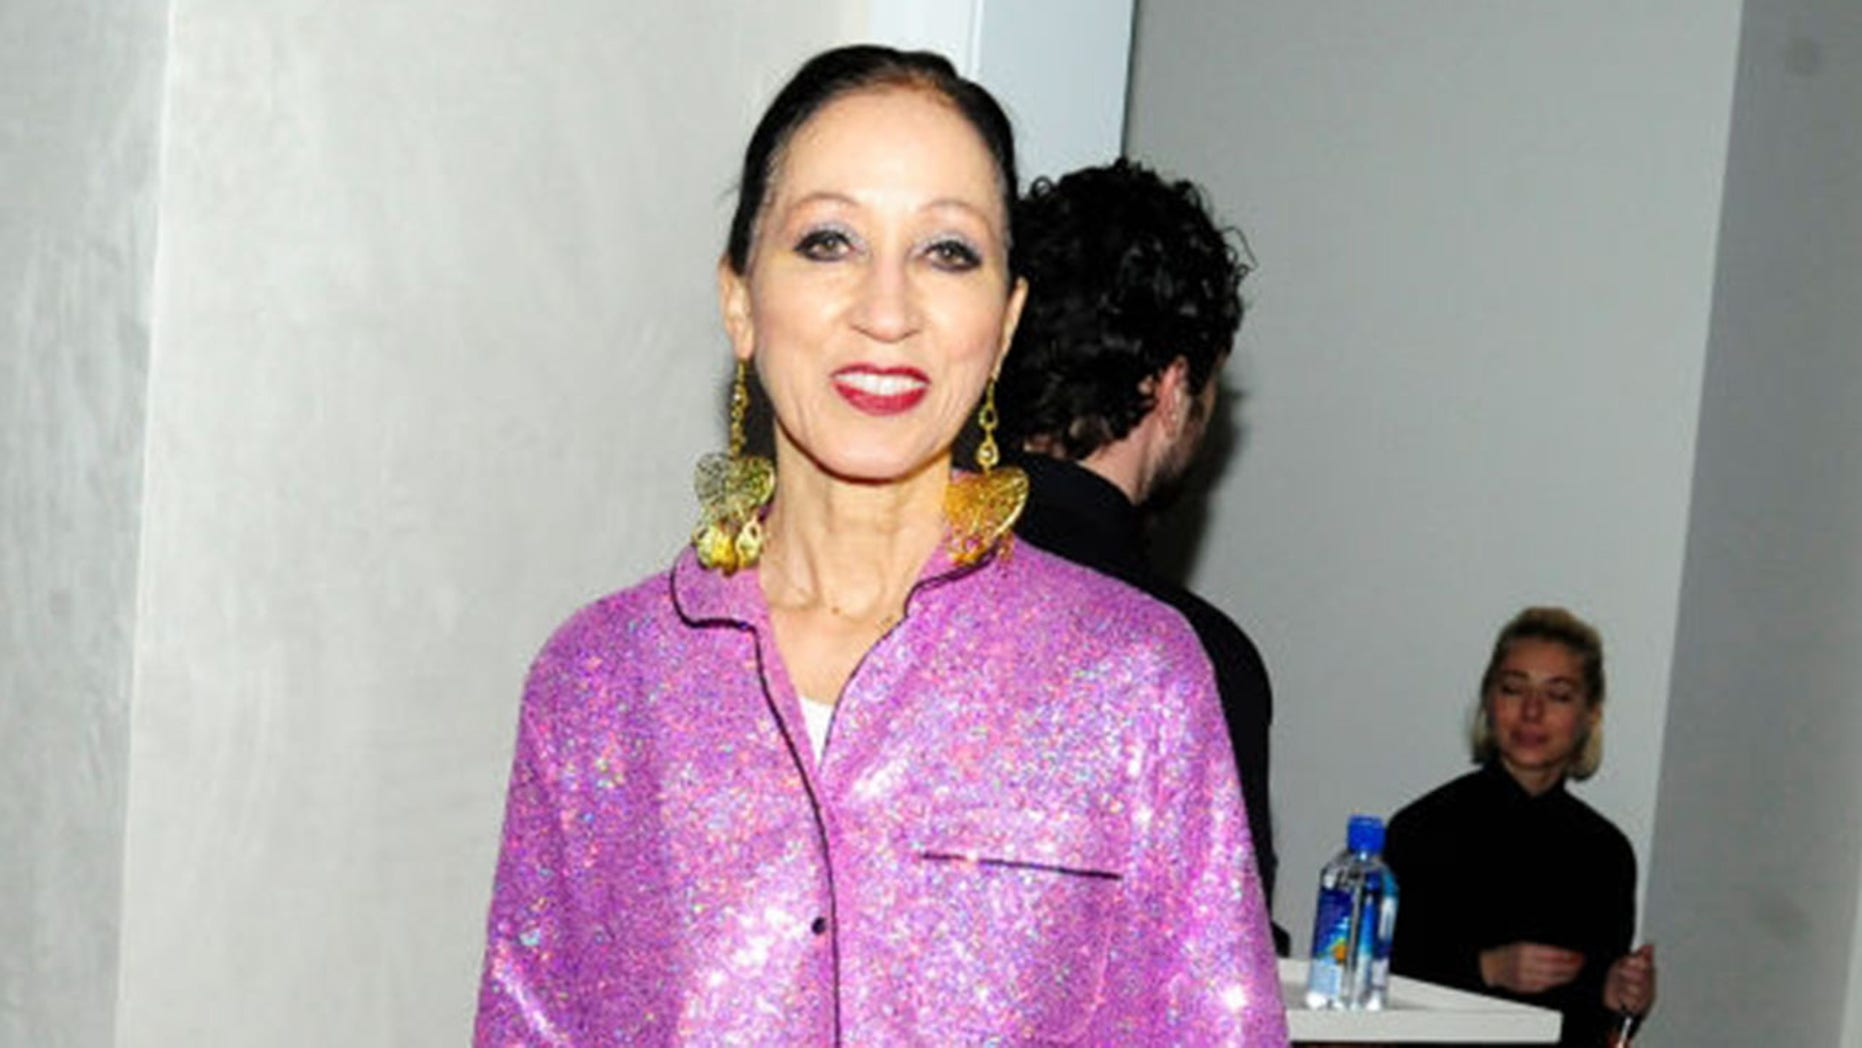 Supermodel Pat Cleveland underwent surgery for colon cancer on March 23, 2019.